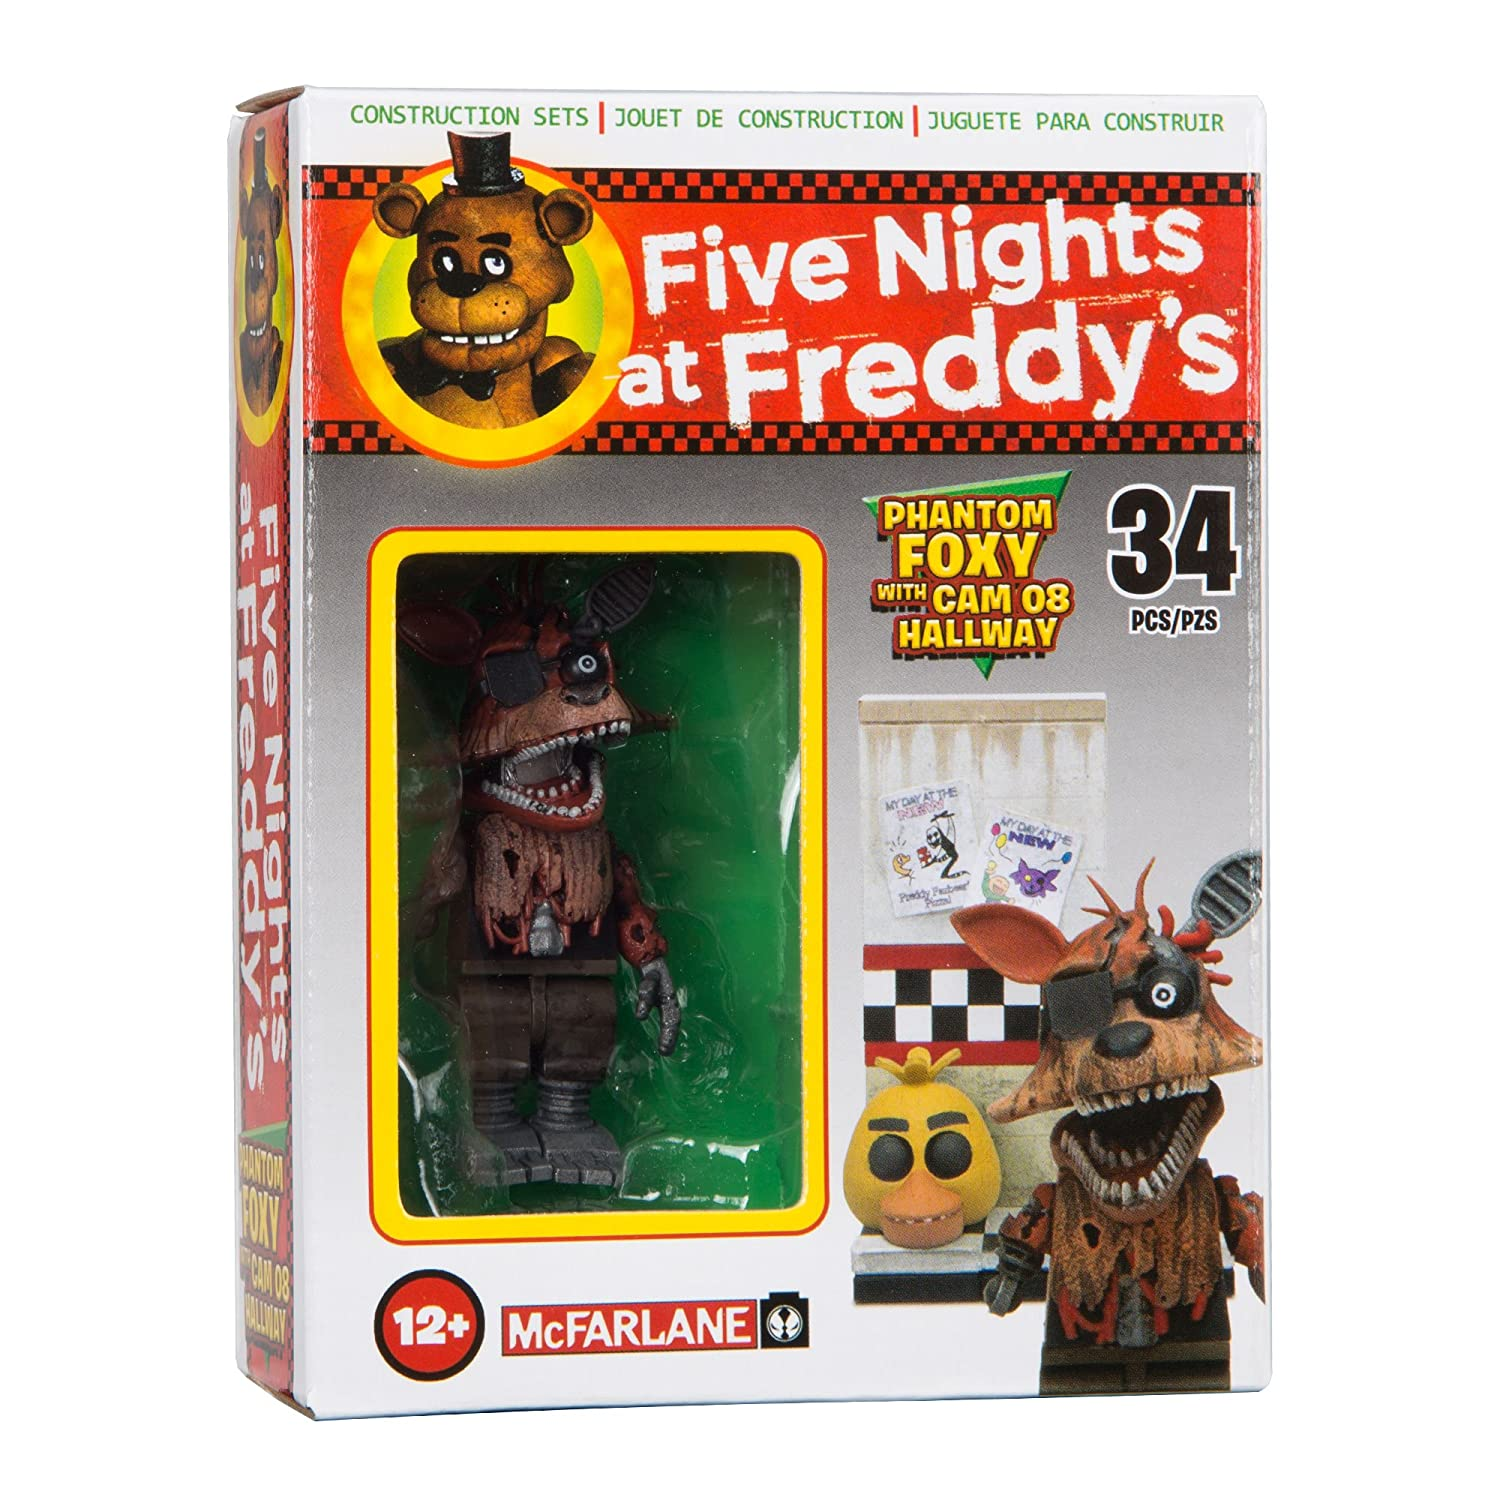 More five nights at freddy s construction sets coming soon - Amazon Com Mcfarlane Toys Five Nights At Freddy S Micro Cam 08 Hallway Construction Set Toys Games